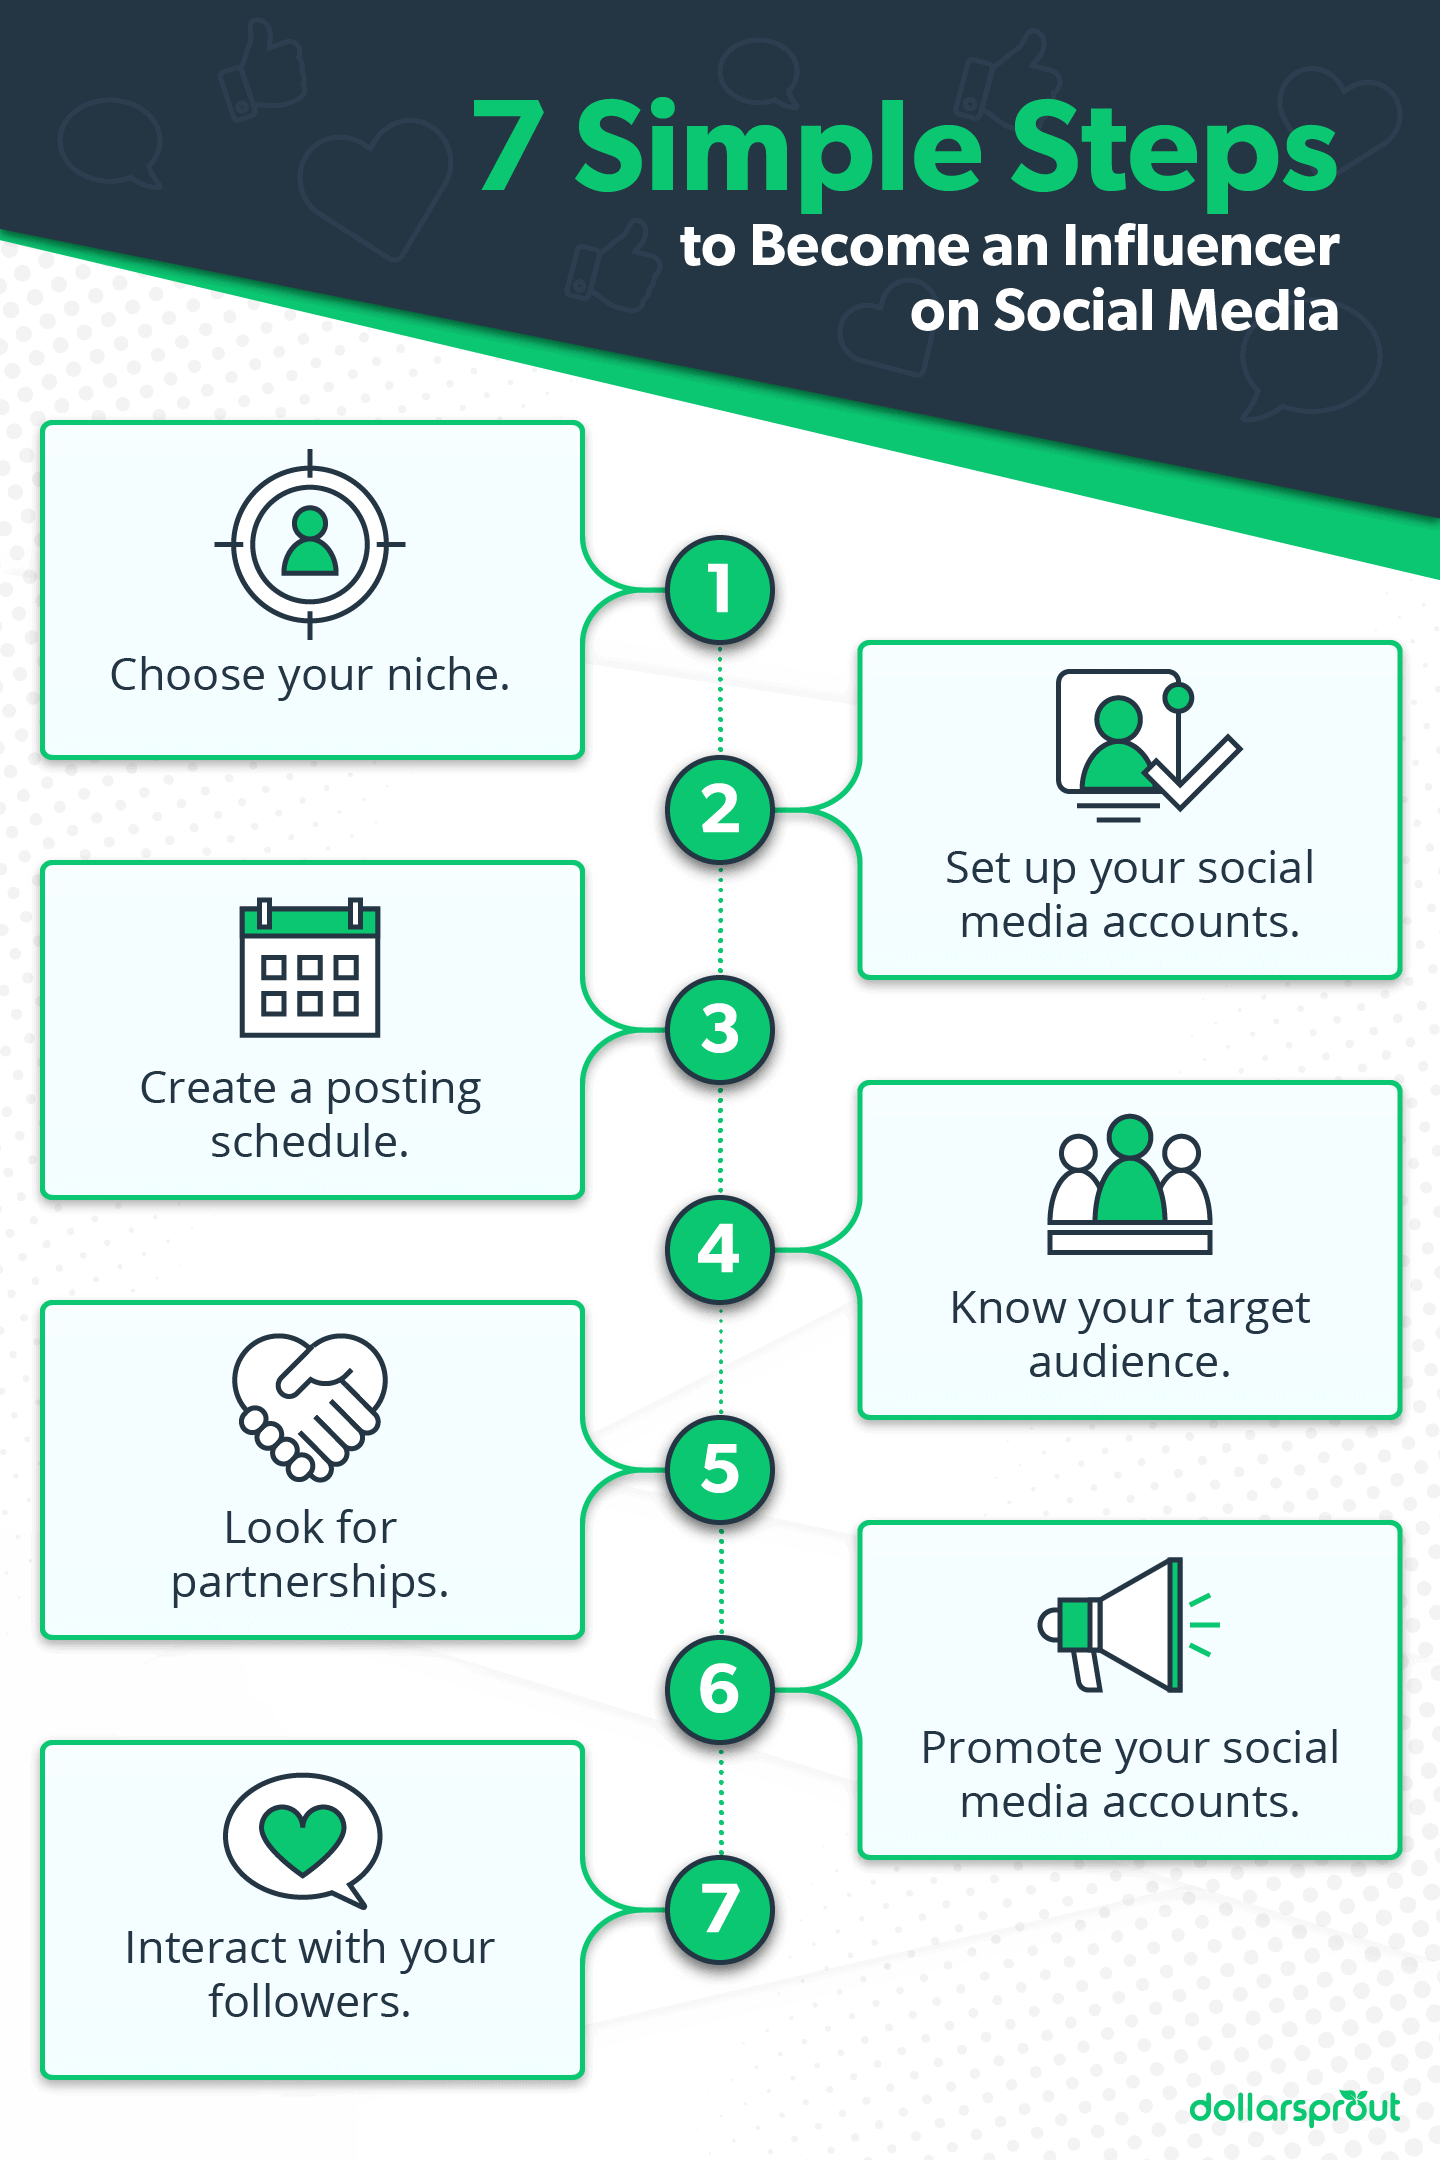 Steps to Become an Influencer on Social Media